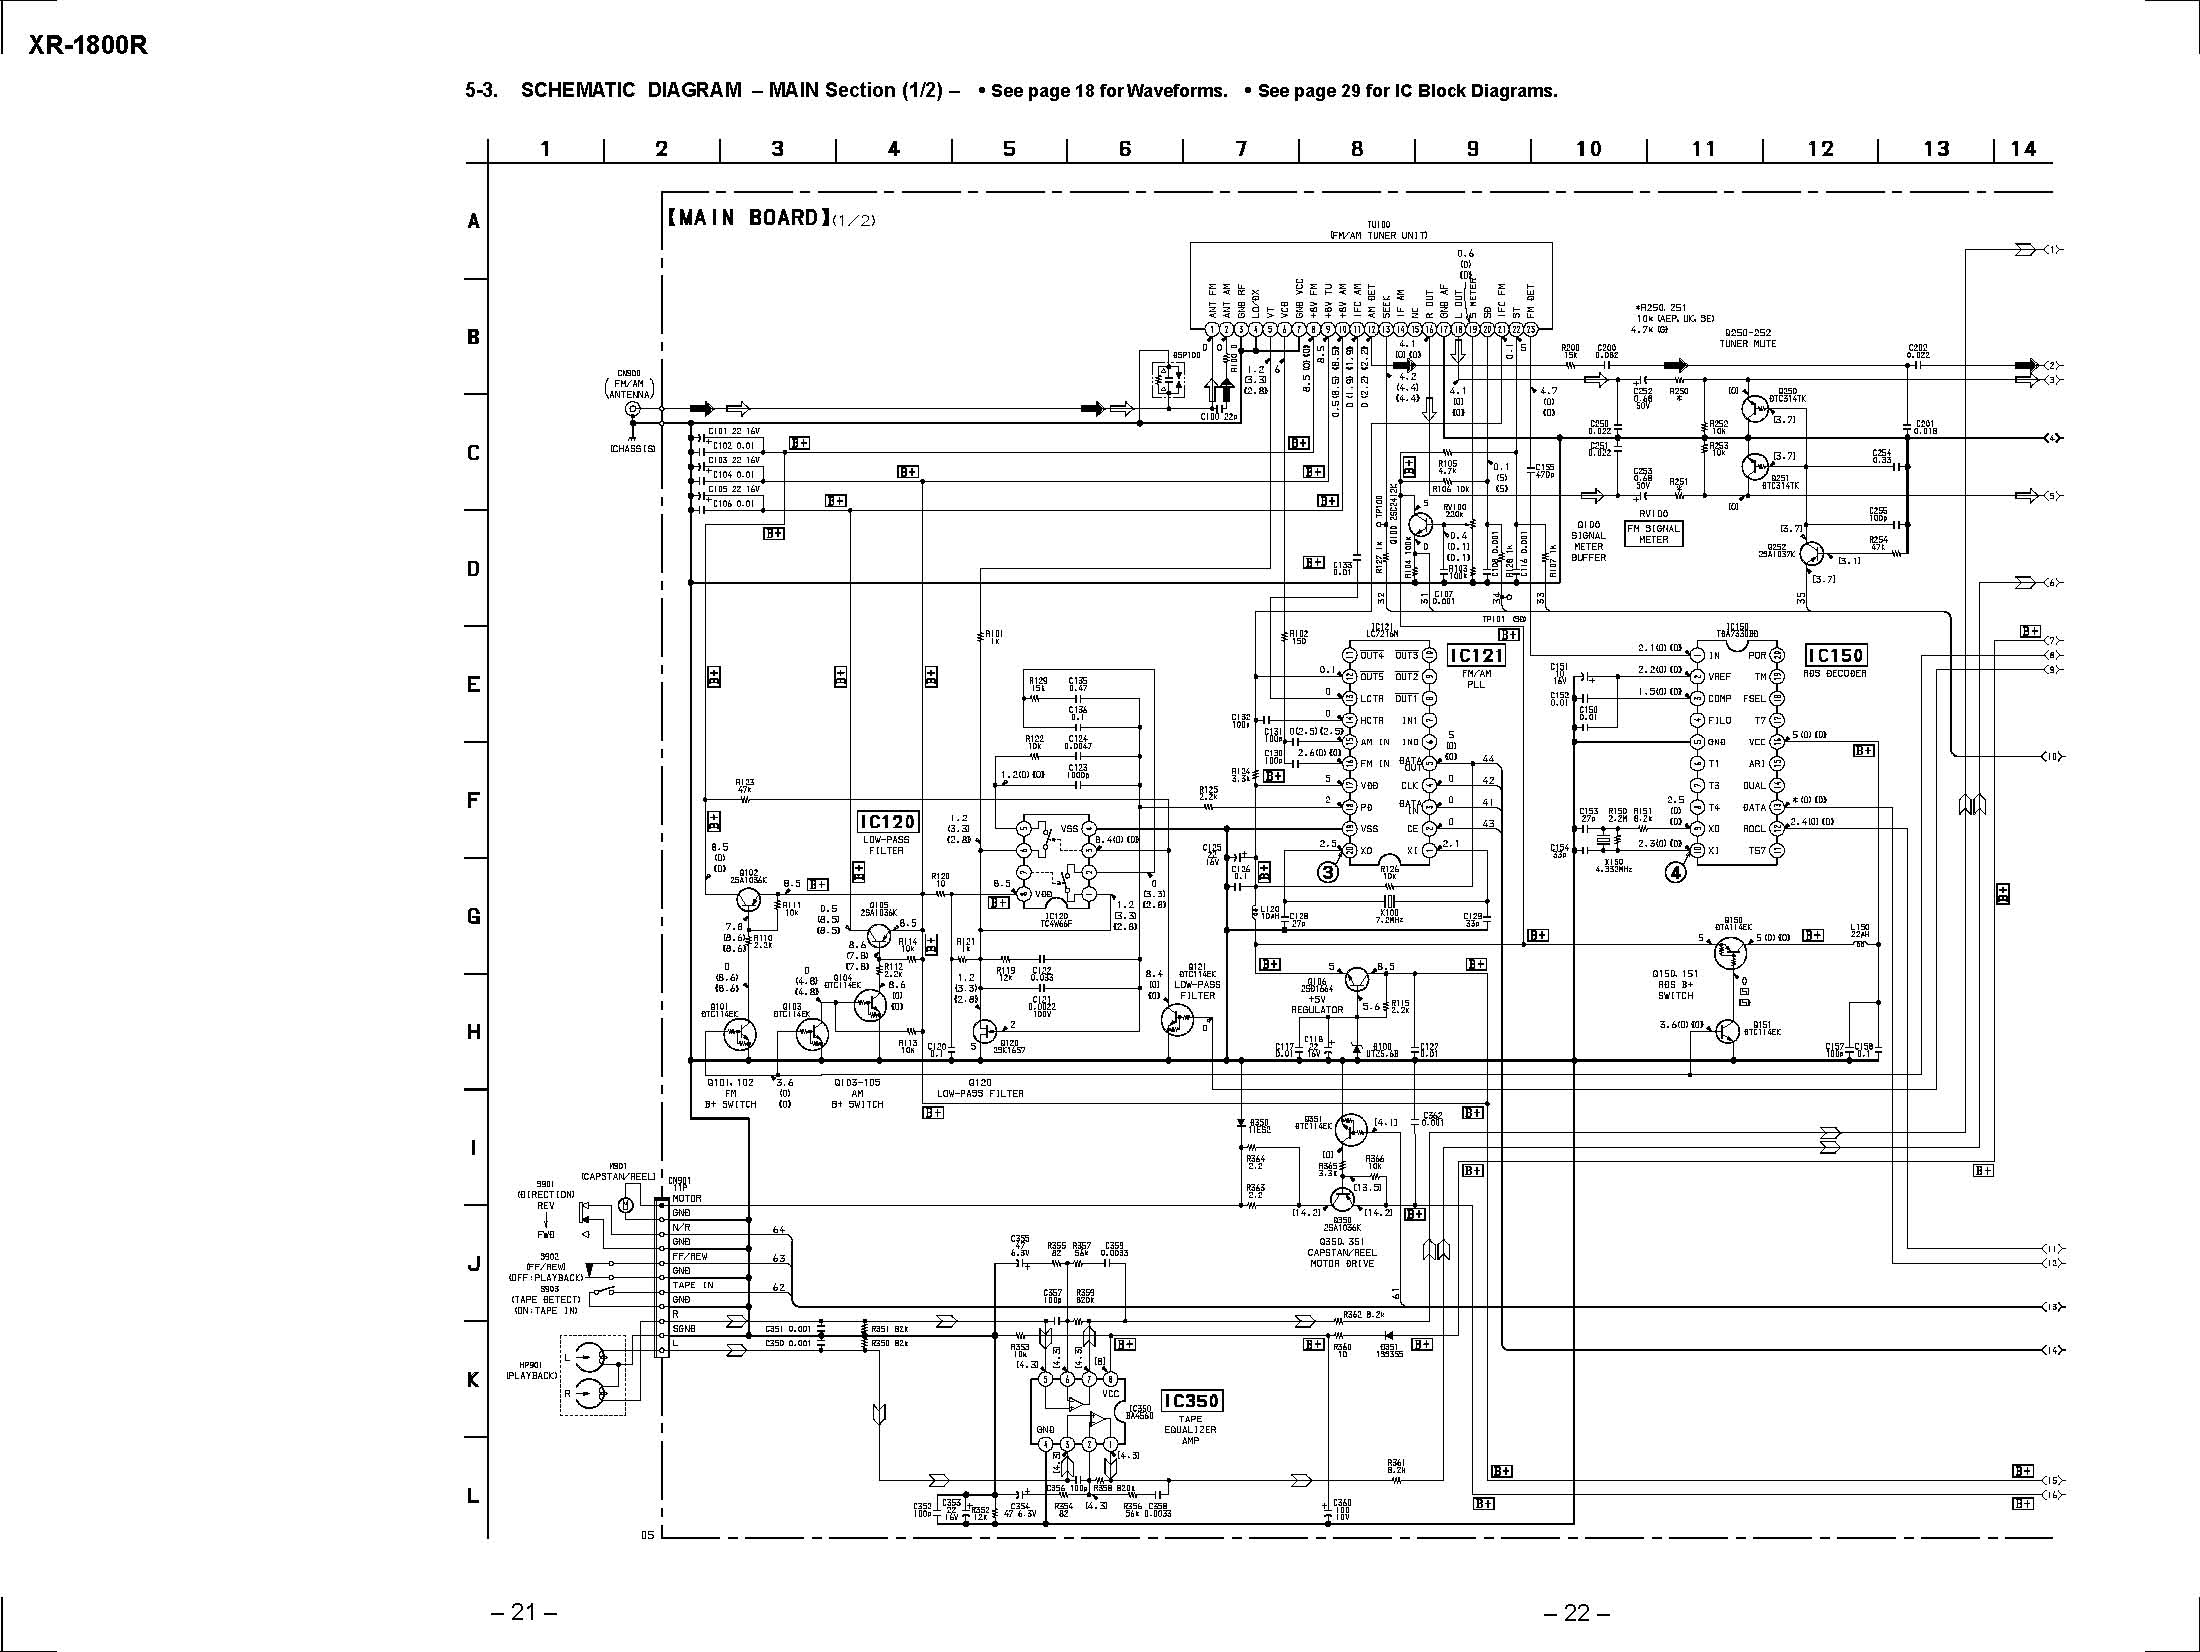 sony xr-1800r schematic diagram in pdf format